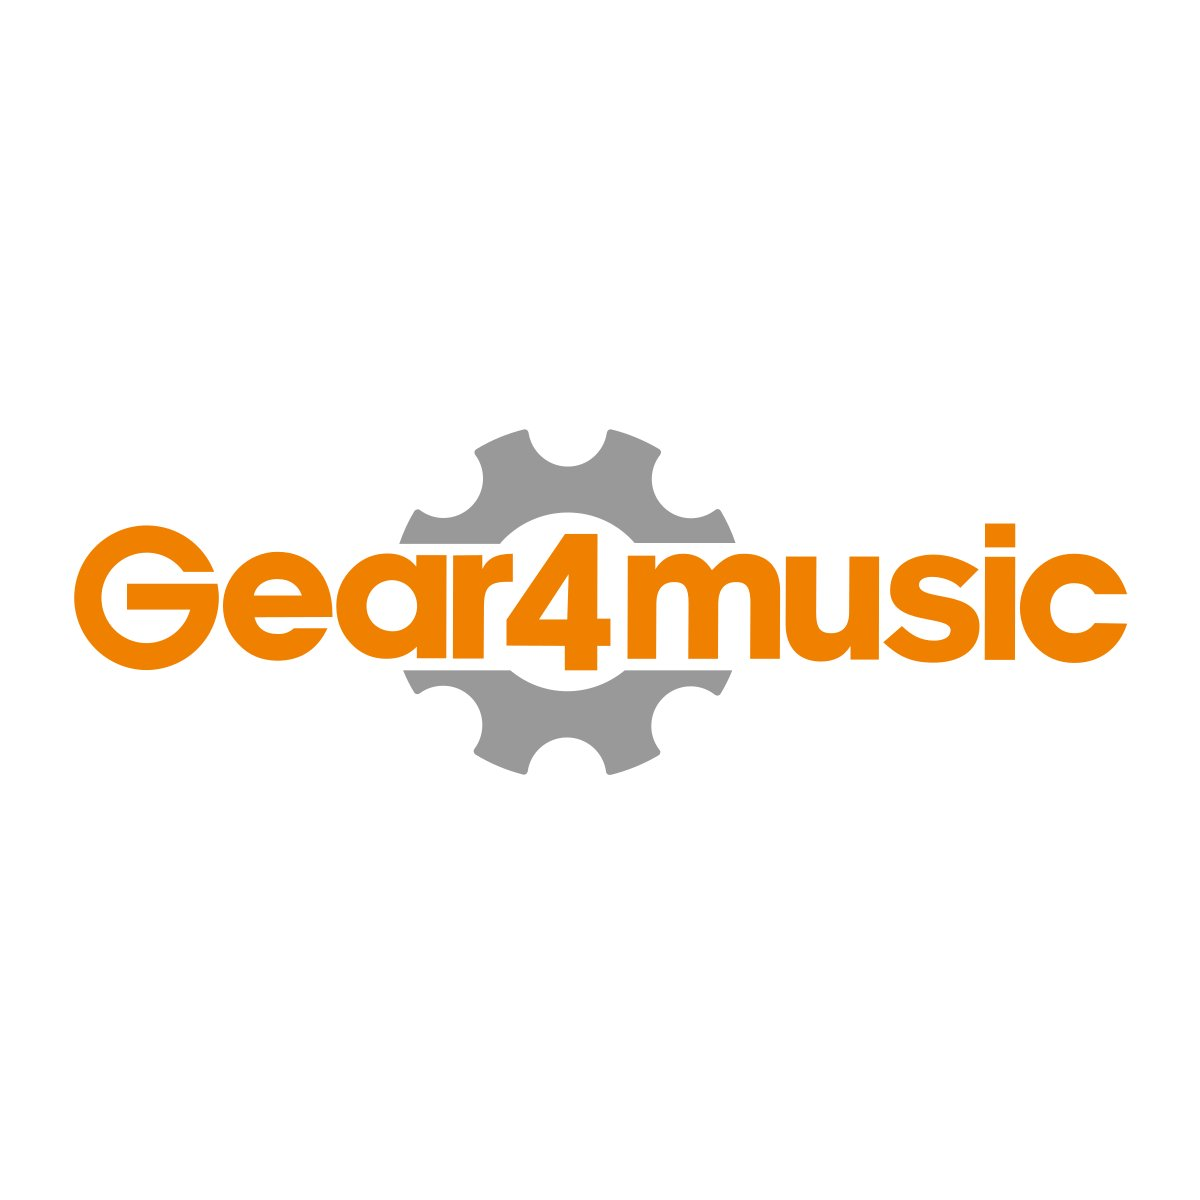 Trompette de Coppergate professionnel par Gear4music